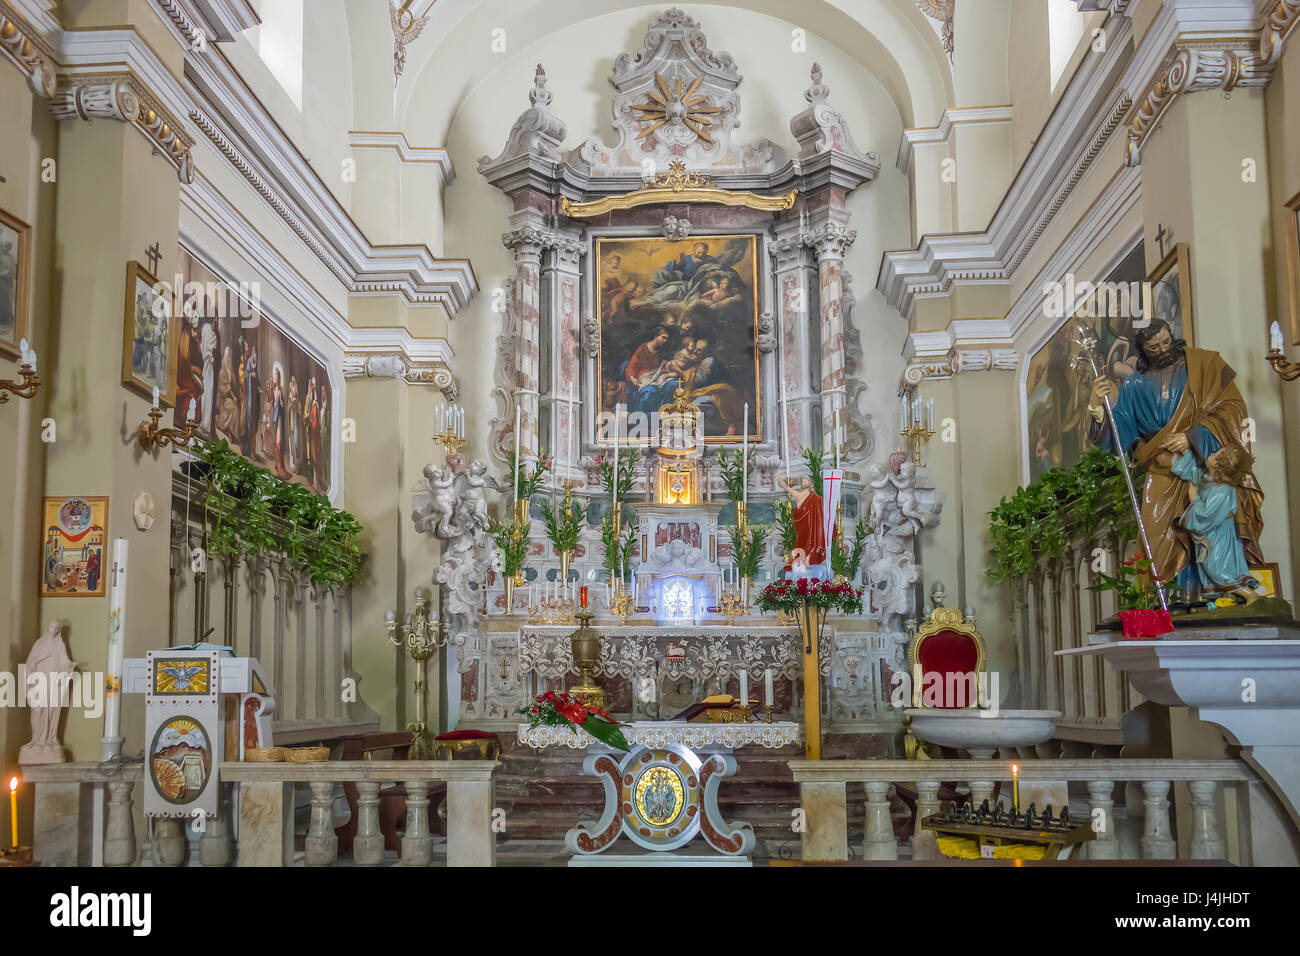 Italy, Aeolian Islands, Lipari, San Giuseppe church, interior - Stock Image